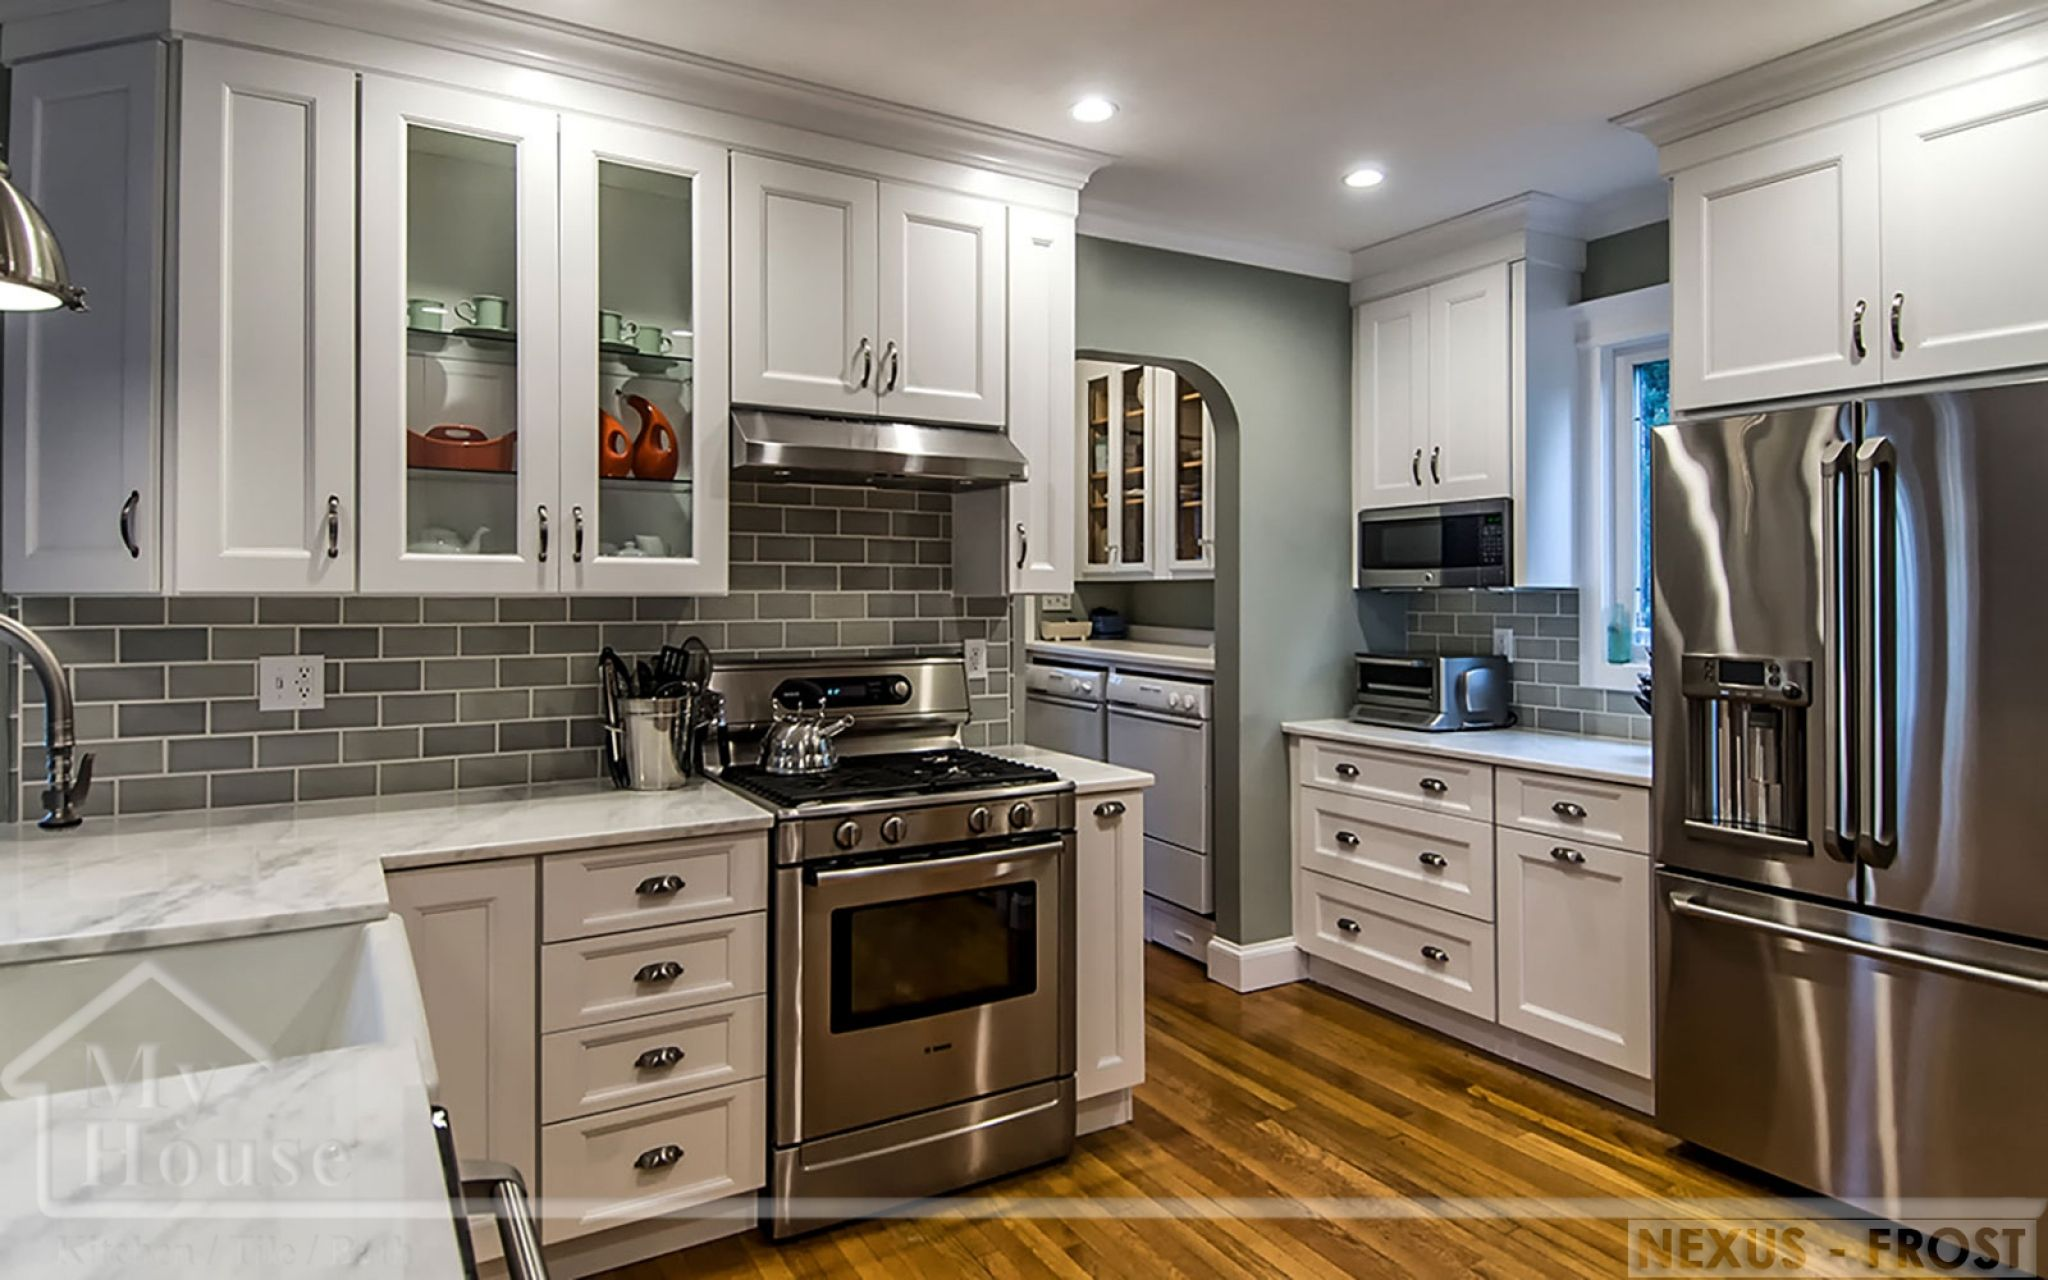 Fabuwood Kitchen Cabinets Kitchen Pantry Organization Ideas Check More At Http Www Entropia Kitchen Cabinets New Kitchen Cabinets Discount Kitchen Cabinets